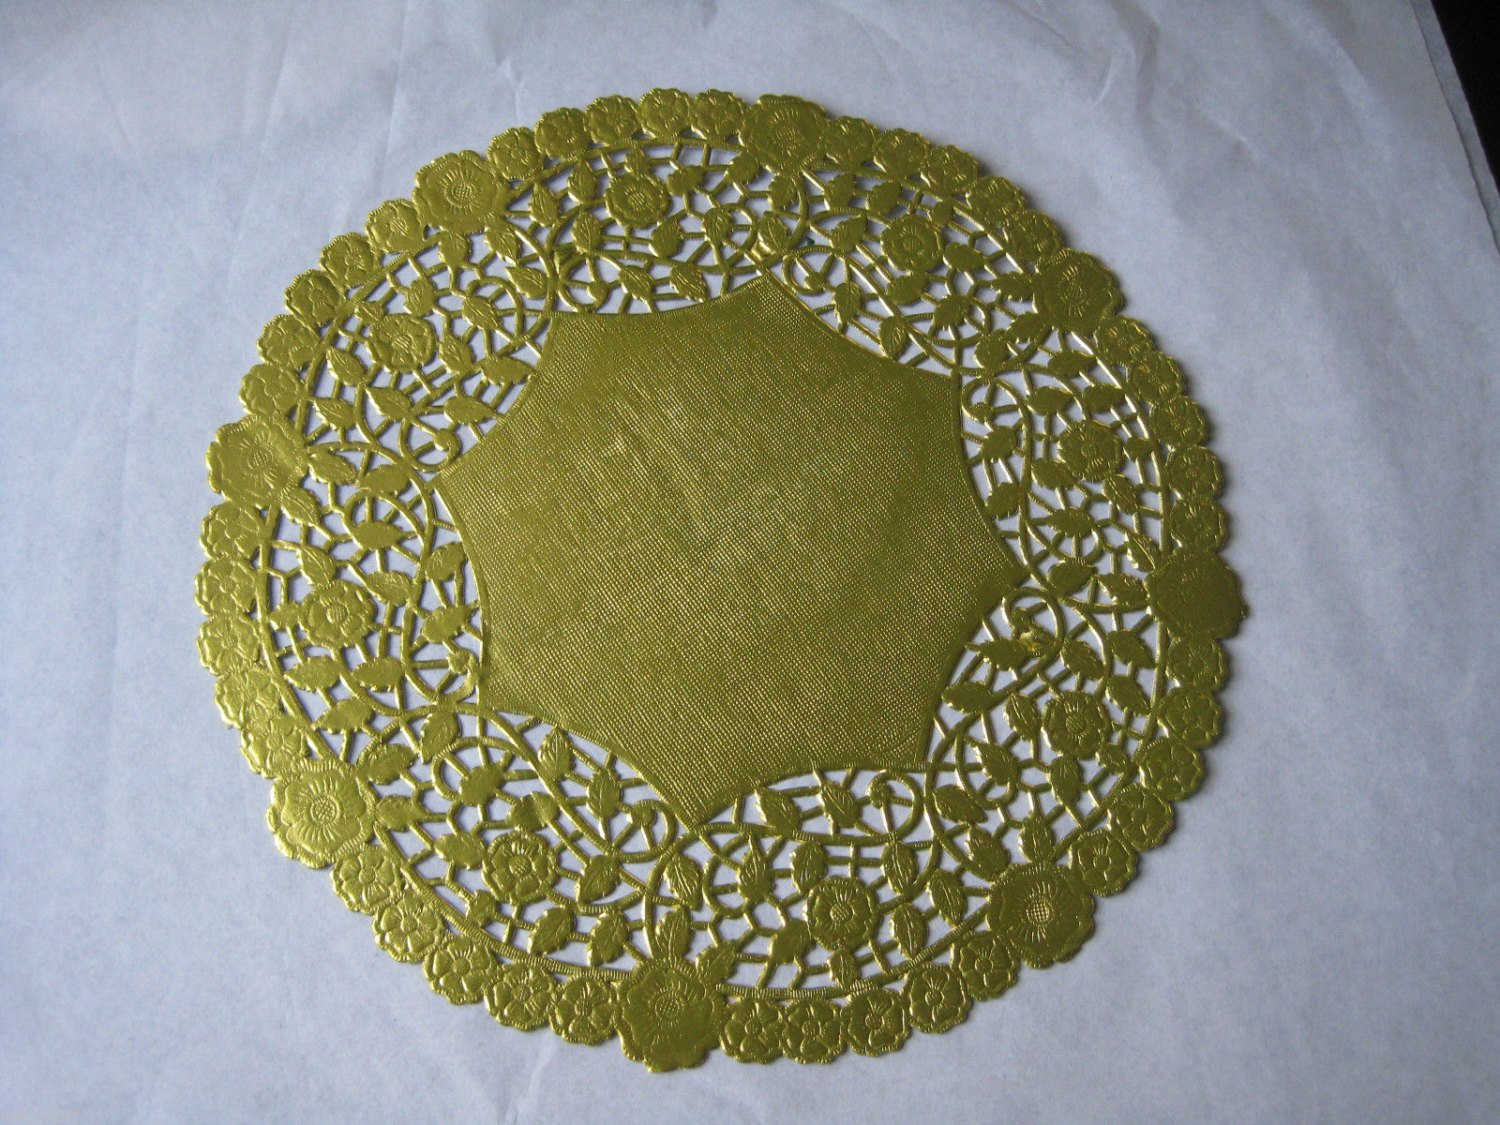 Paper Lace Doilies Lovely 10 Inch Round Gold Foil Paper Lace Doilies Craft Cards Of New 46 Models Paper Lace Doilies